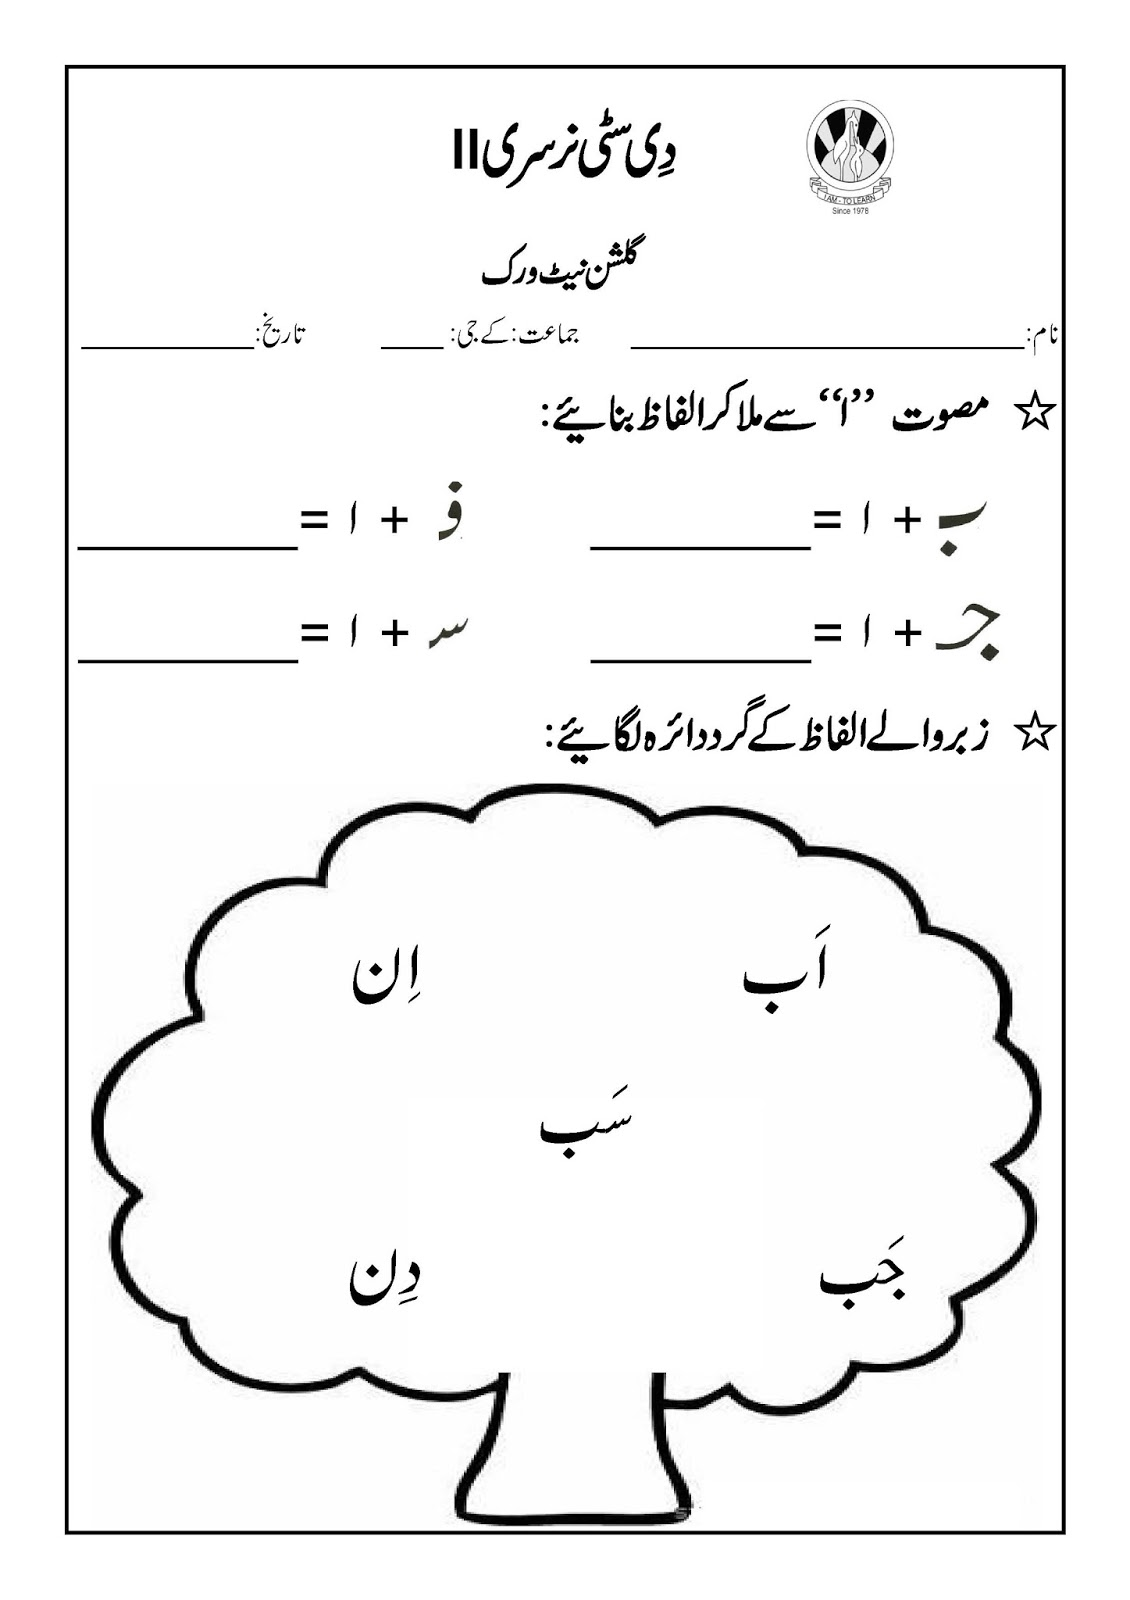 Sr Gulshan The City Nursery Ii Urdu Math Kuwa Ict Worksheets